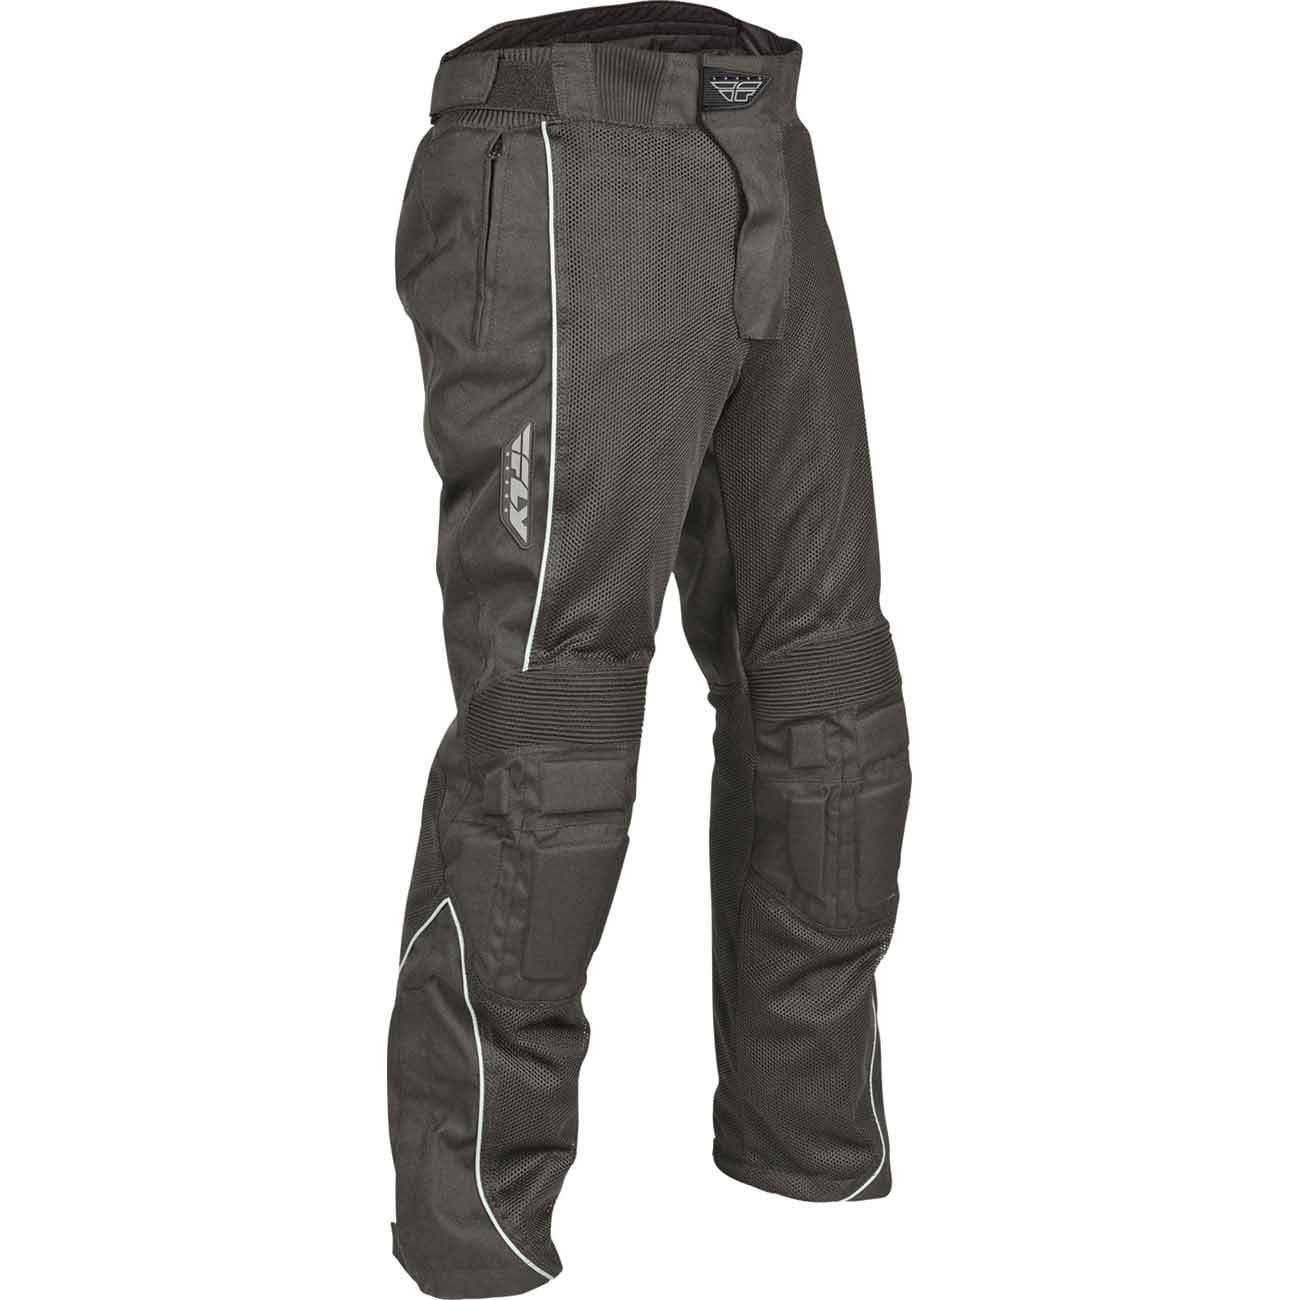 fly-coolpro-mesh-motorcycle-pants.jpg